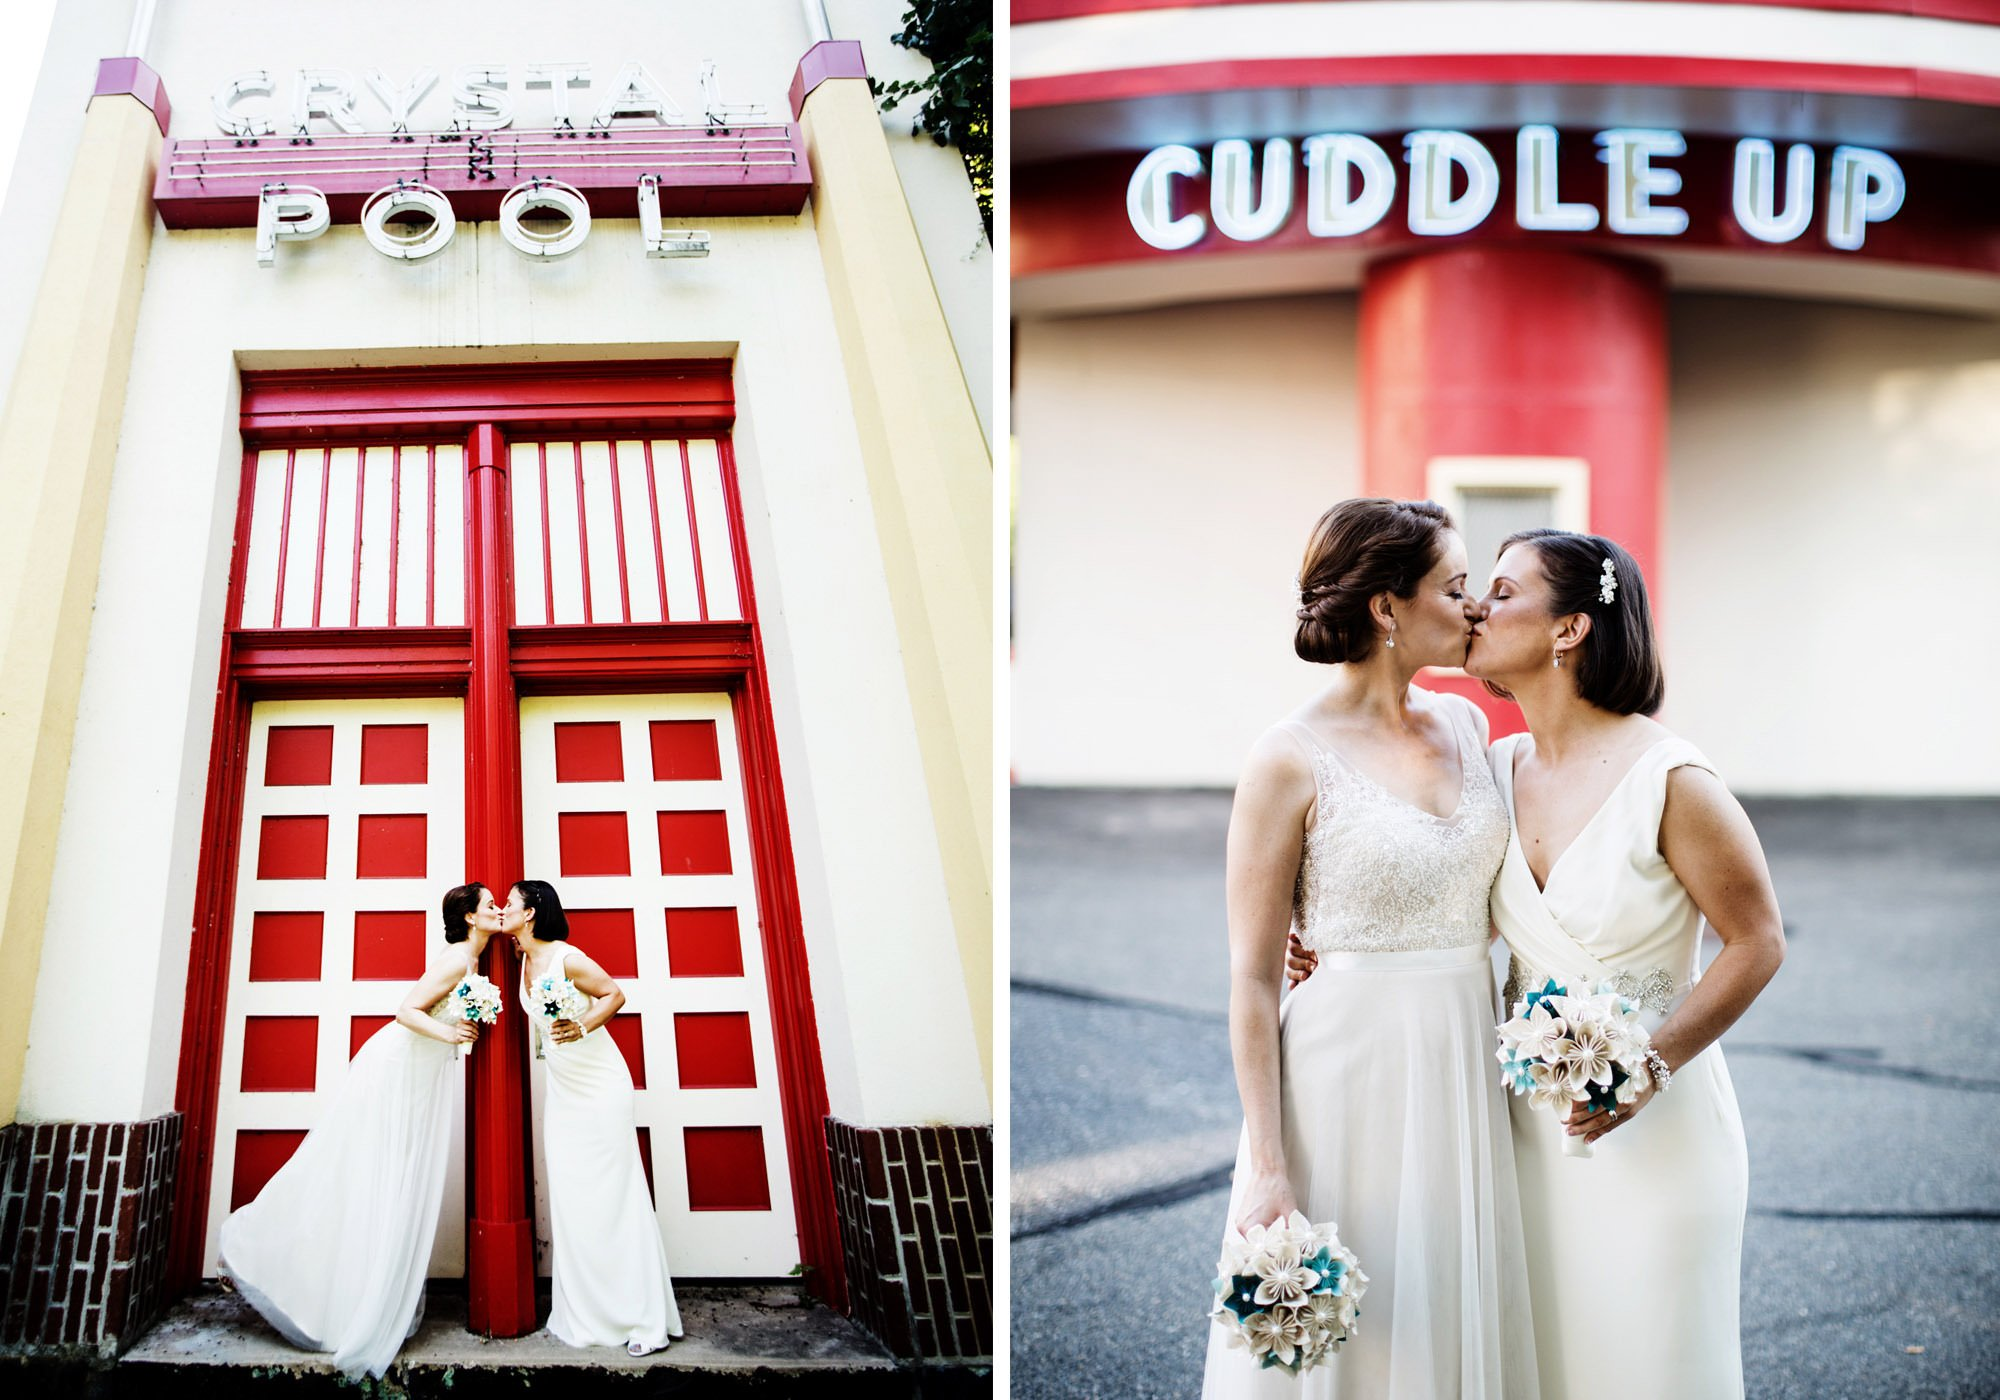 The brides pose for portraits in Glen Echo Park following their ceremony.